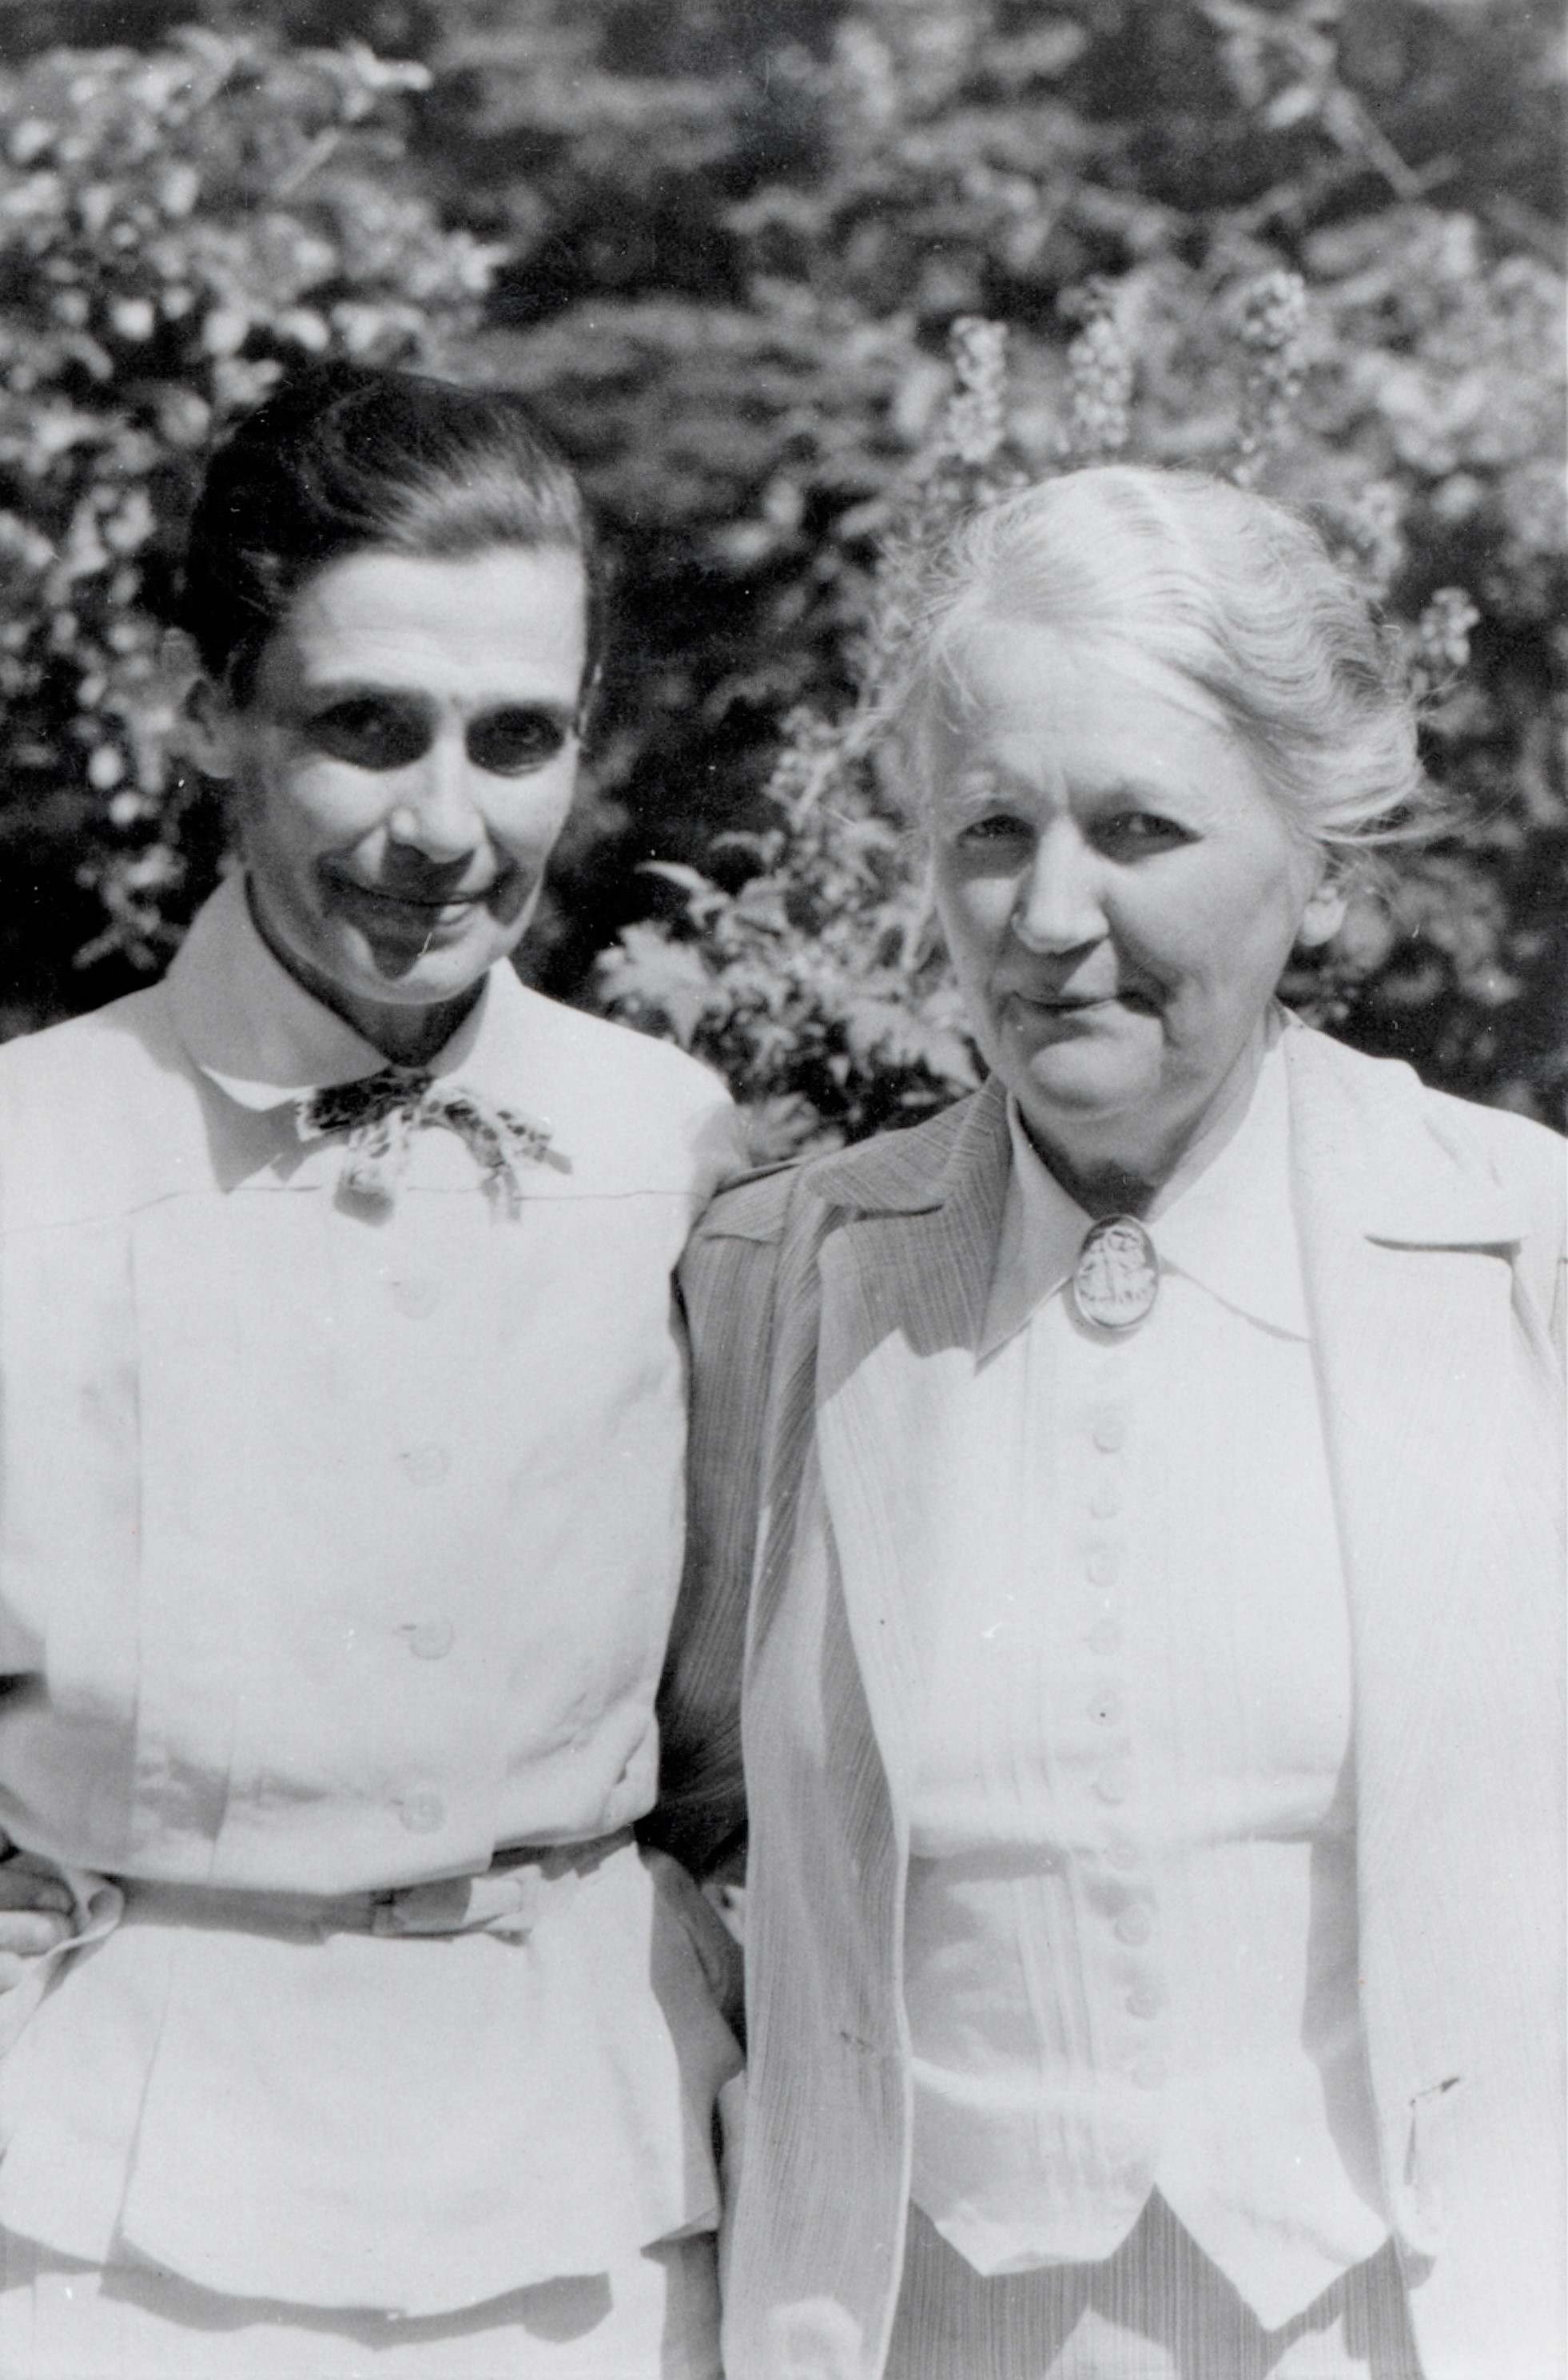 Ebba Holgersson (right) and Honorine Hermelin (1886-1977). Photographer and year unknown (KvinnSam, Gothenburg University Library)